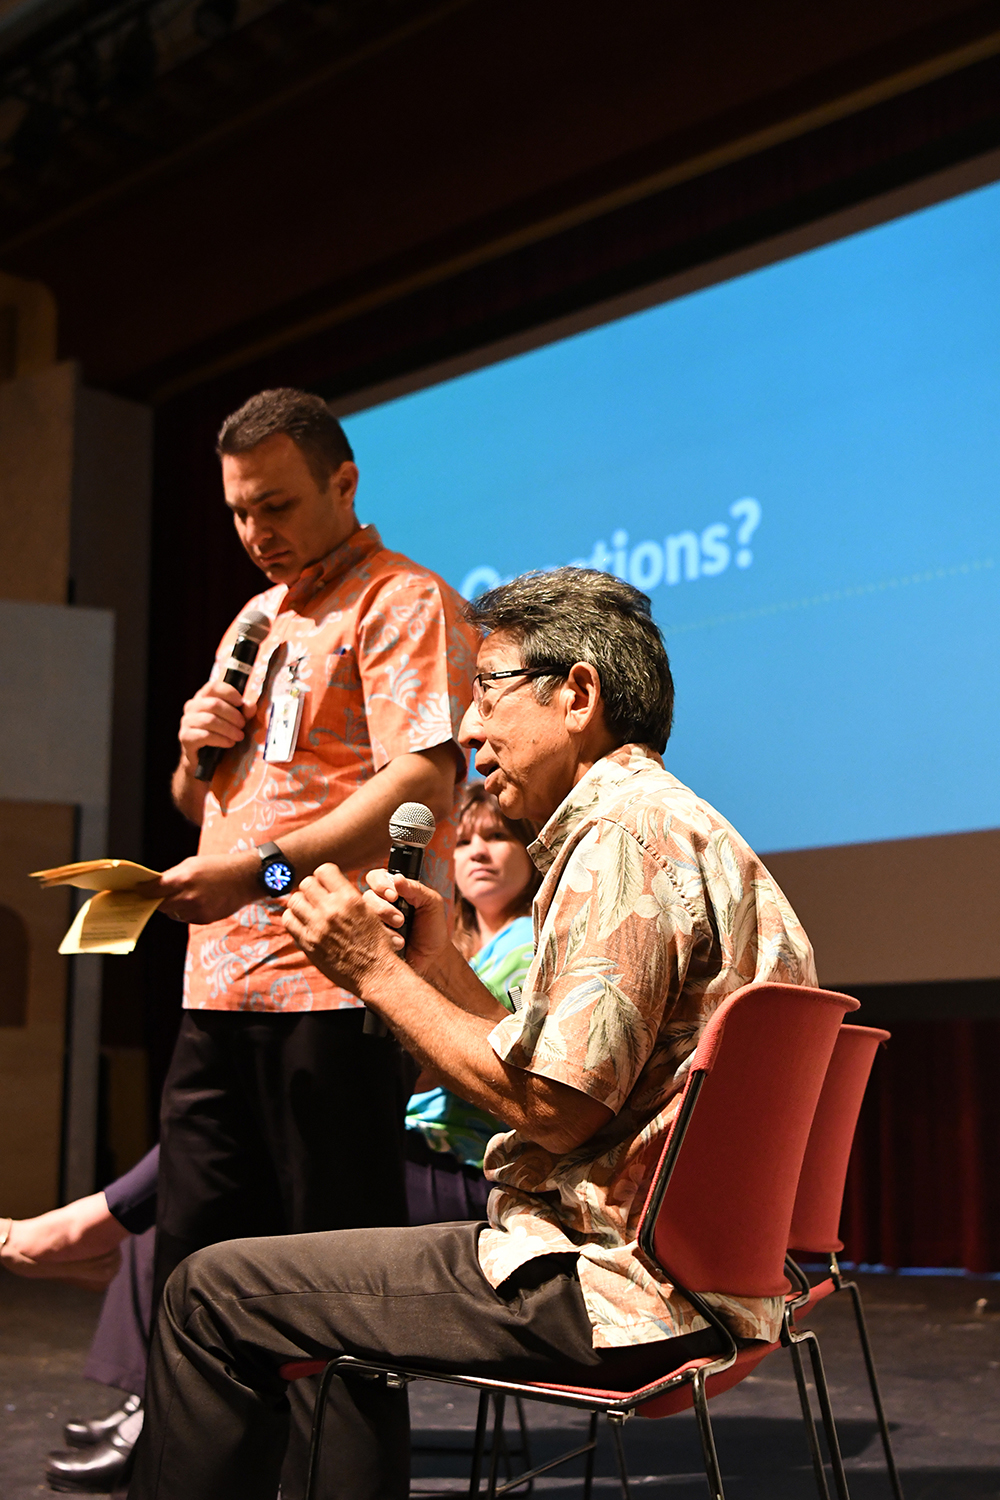 Brian Ige, construction manager for the Wailuku Town Improvement Projects, answers questions during Thursday night's meeting alongside Maui County Managing Director Sandy Baz and Project Administrator Erin Wade inside Iao Theater.